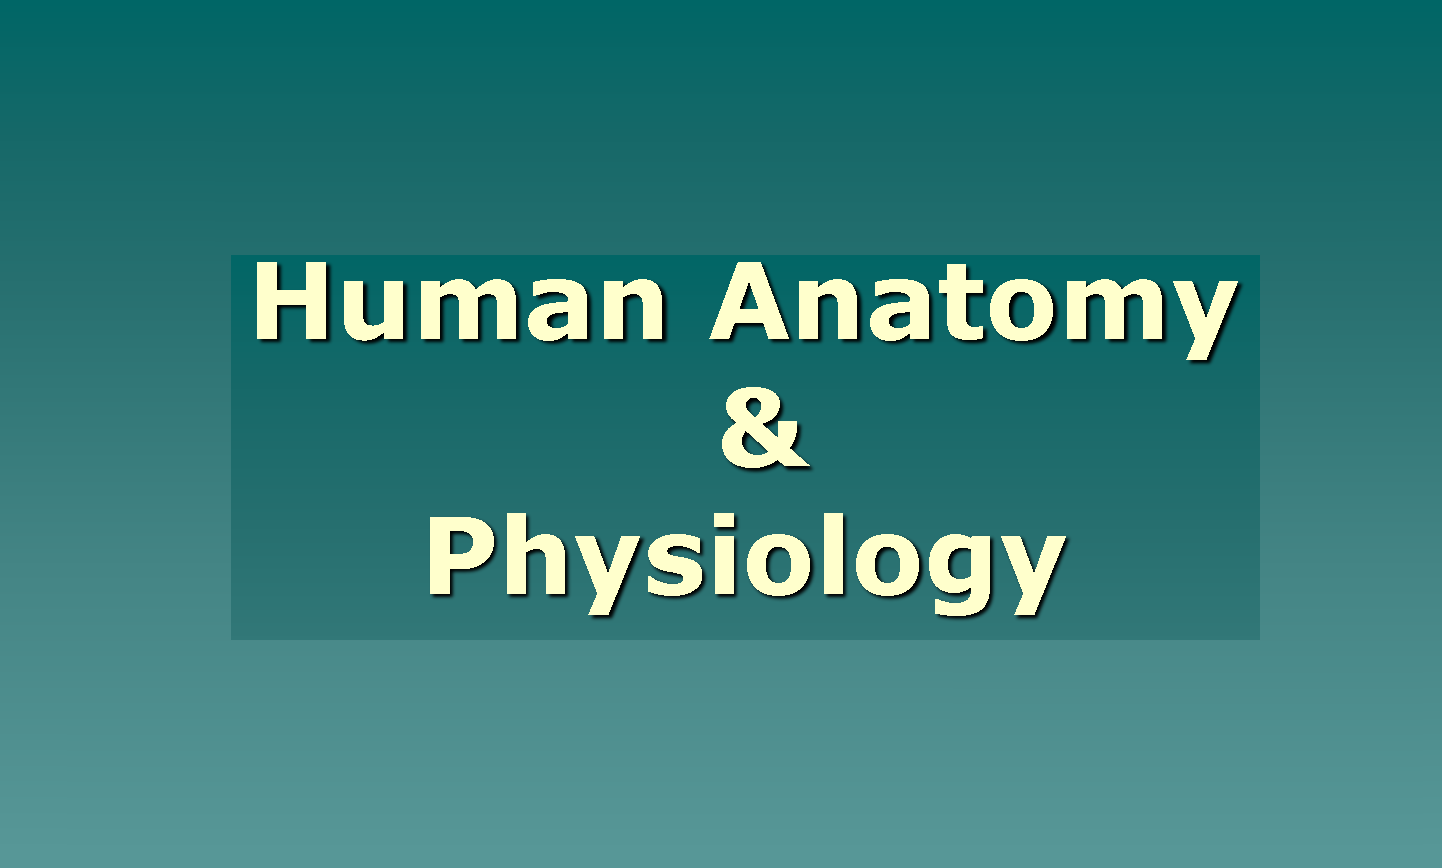 Anatomy And Physiology Course | Best Way to Study For Anatomy and ...